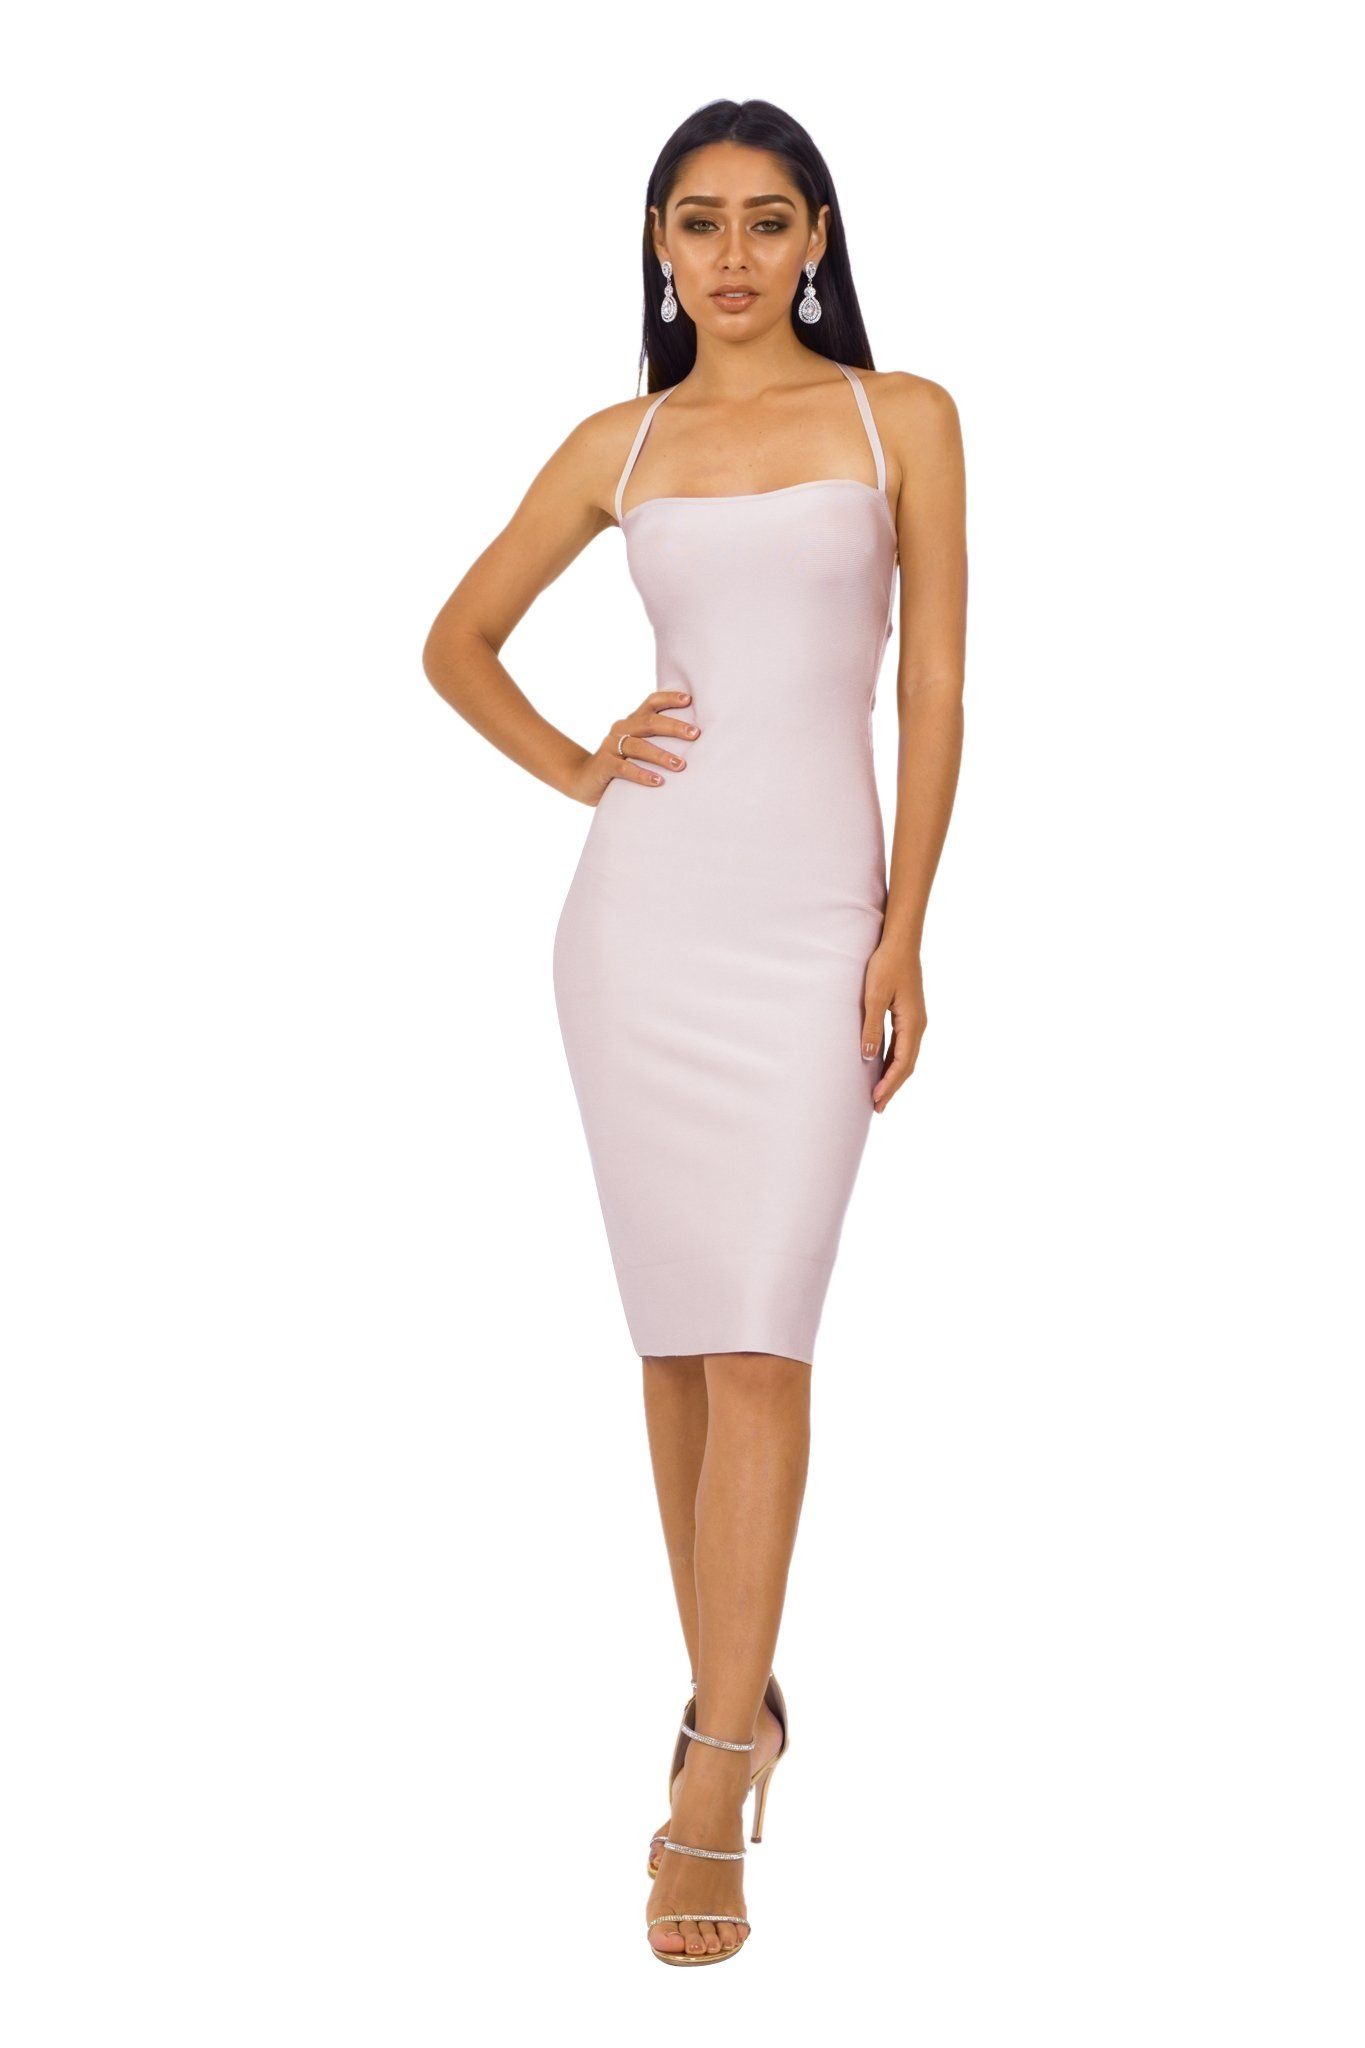 Nude colored knee length bodycon bandage dress with square neckline and lace-up back design